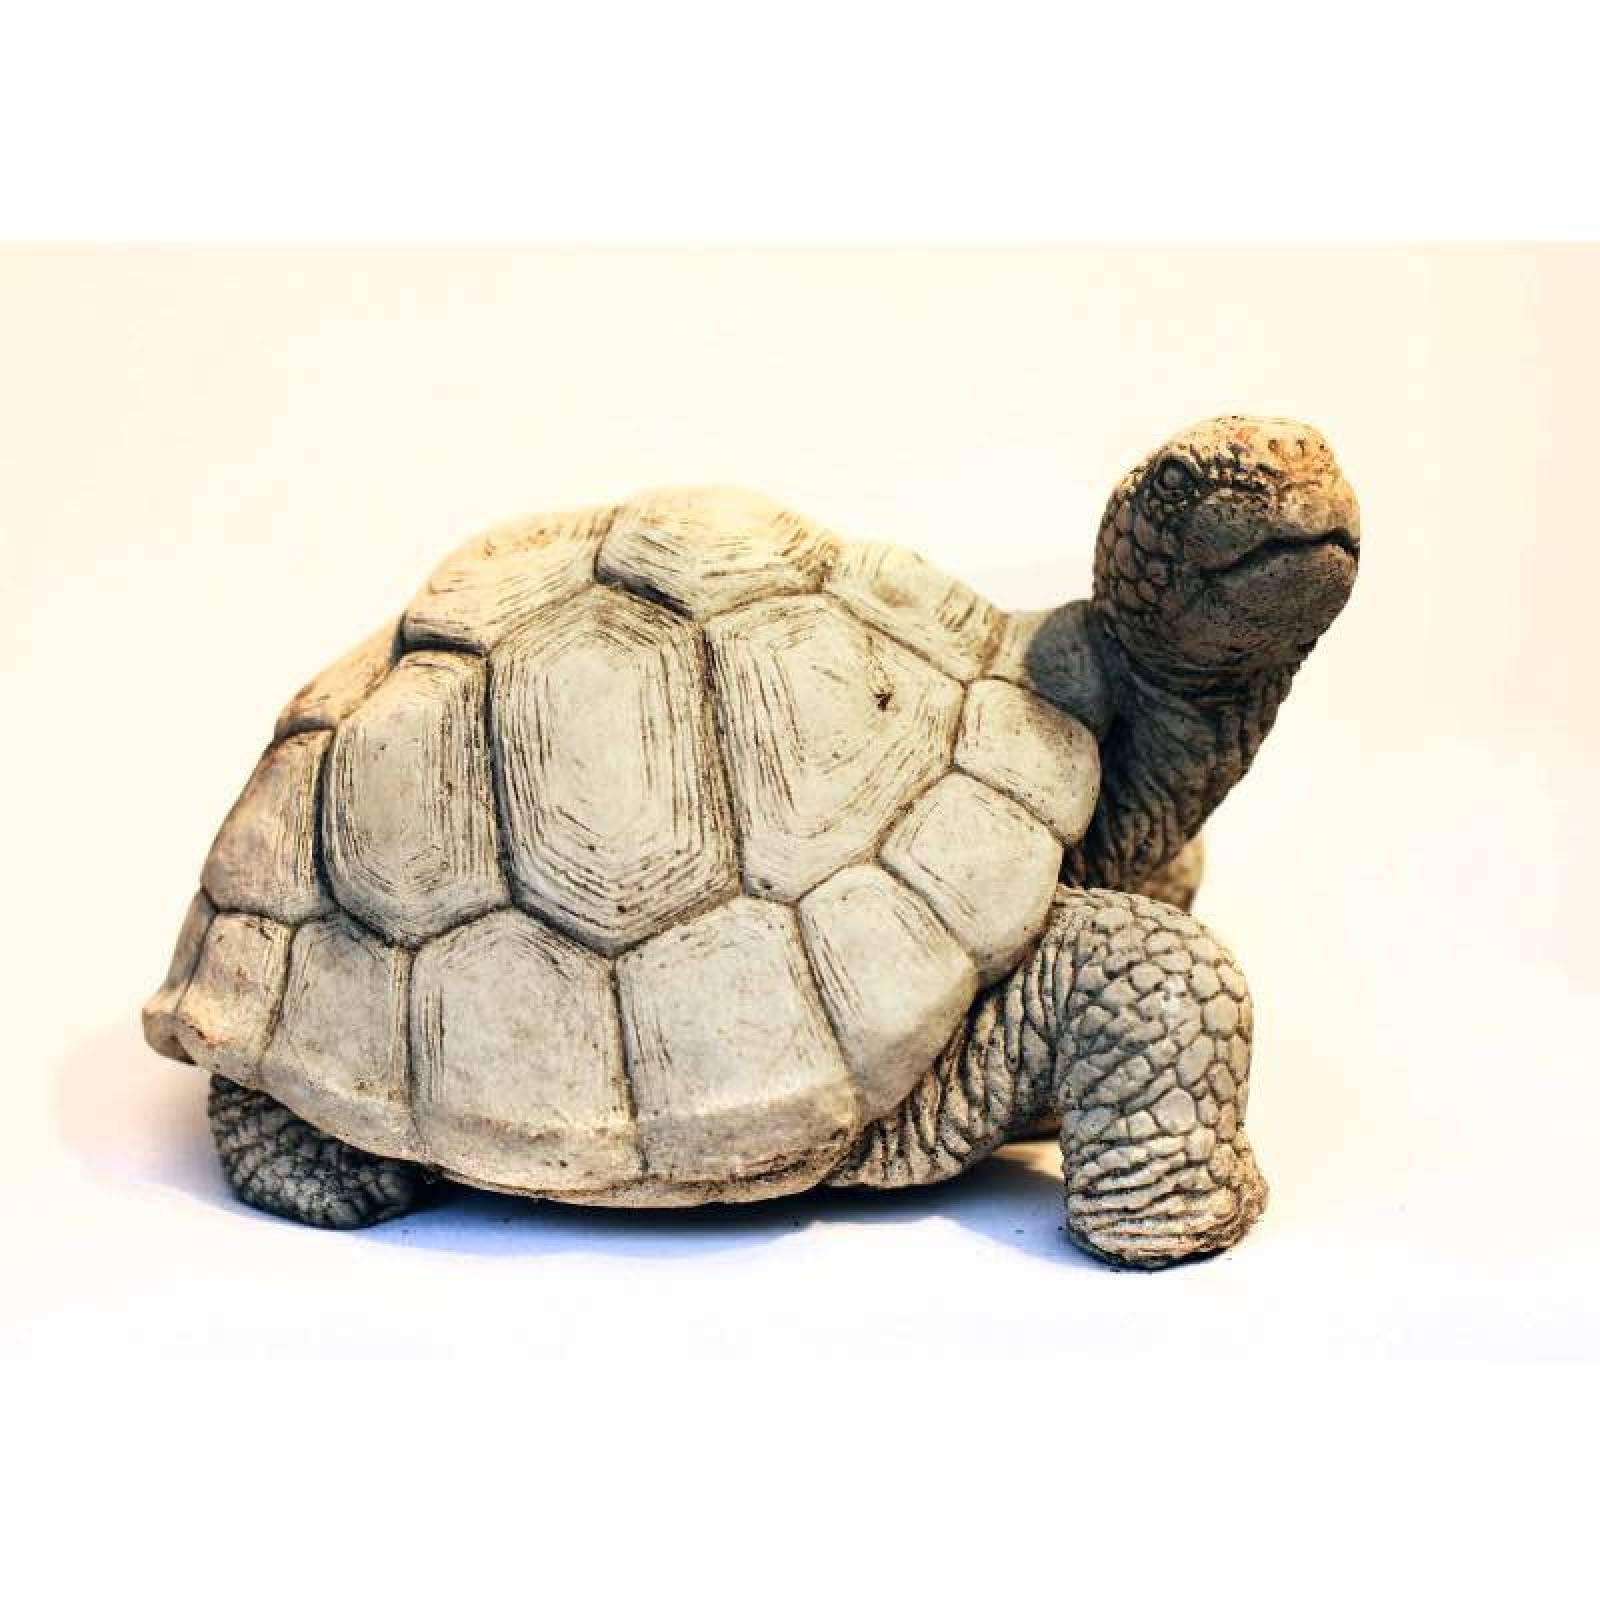 Large Tortoise Garden Ornament